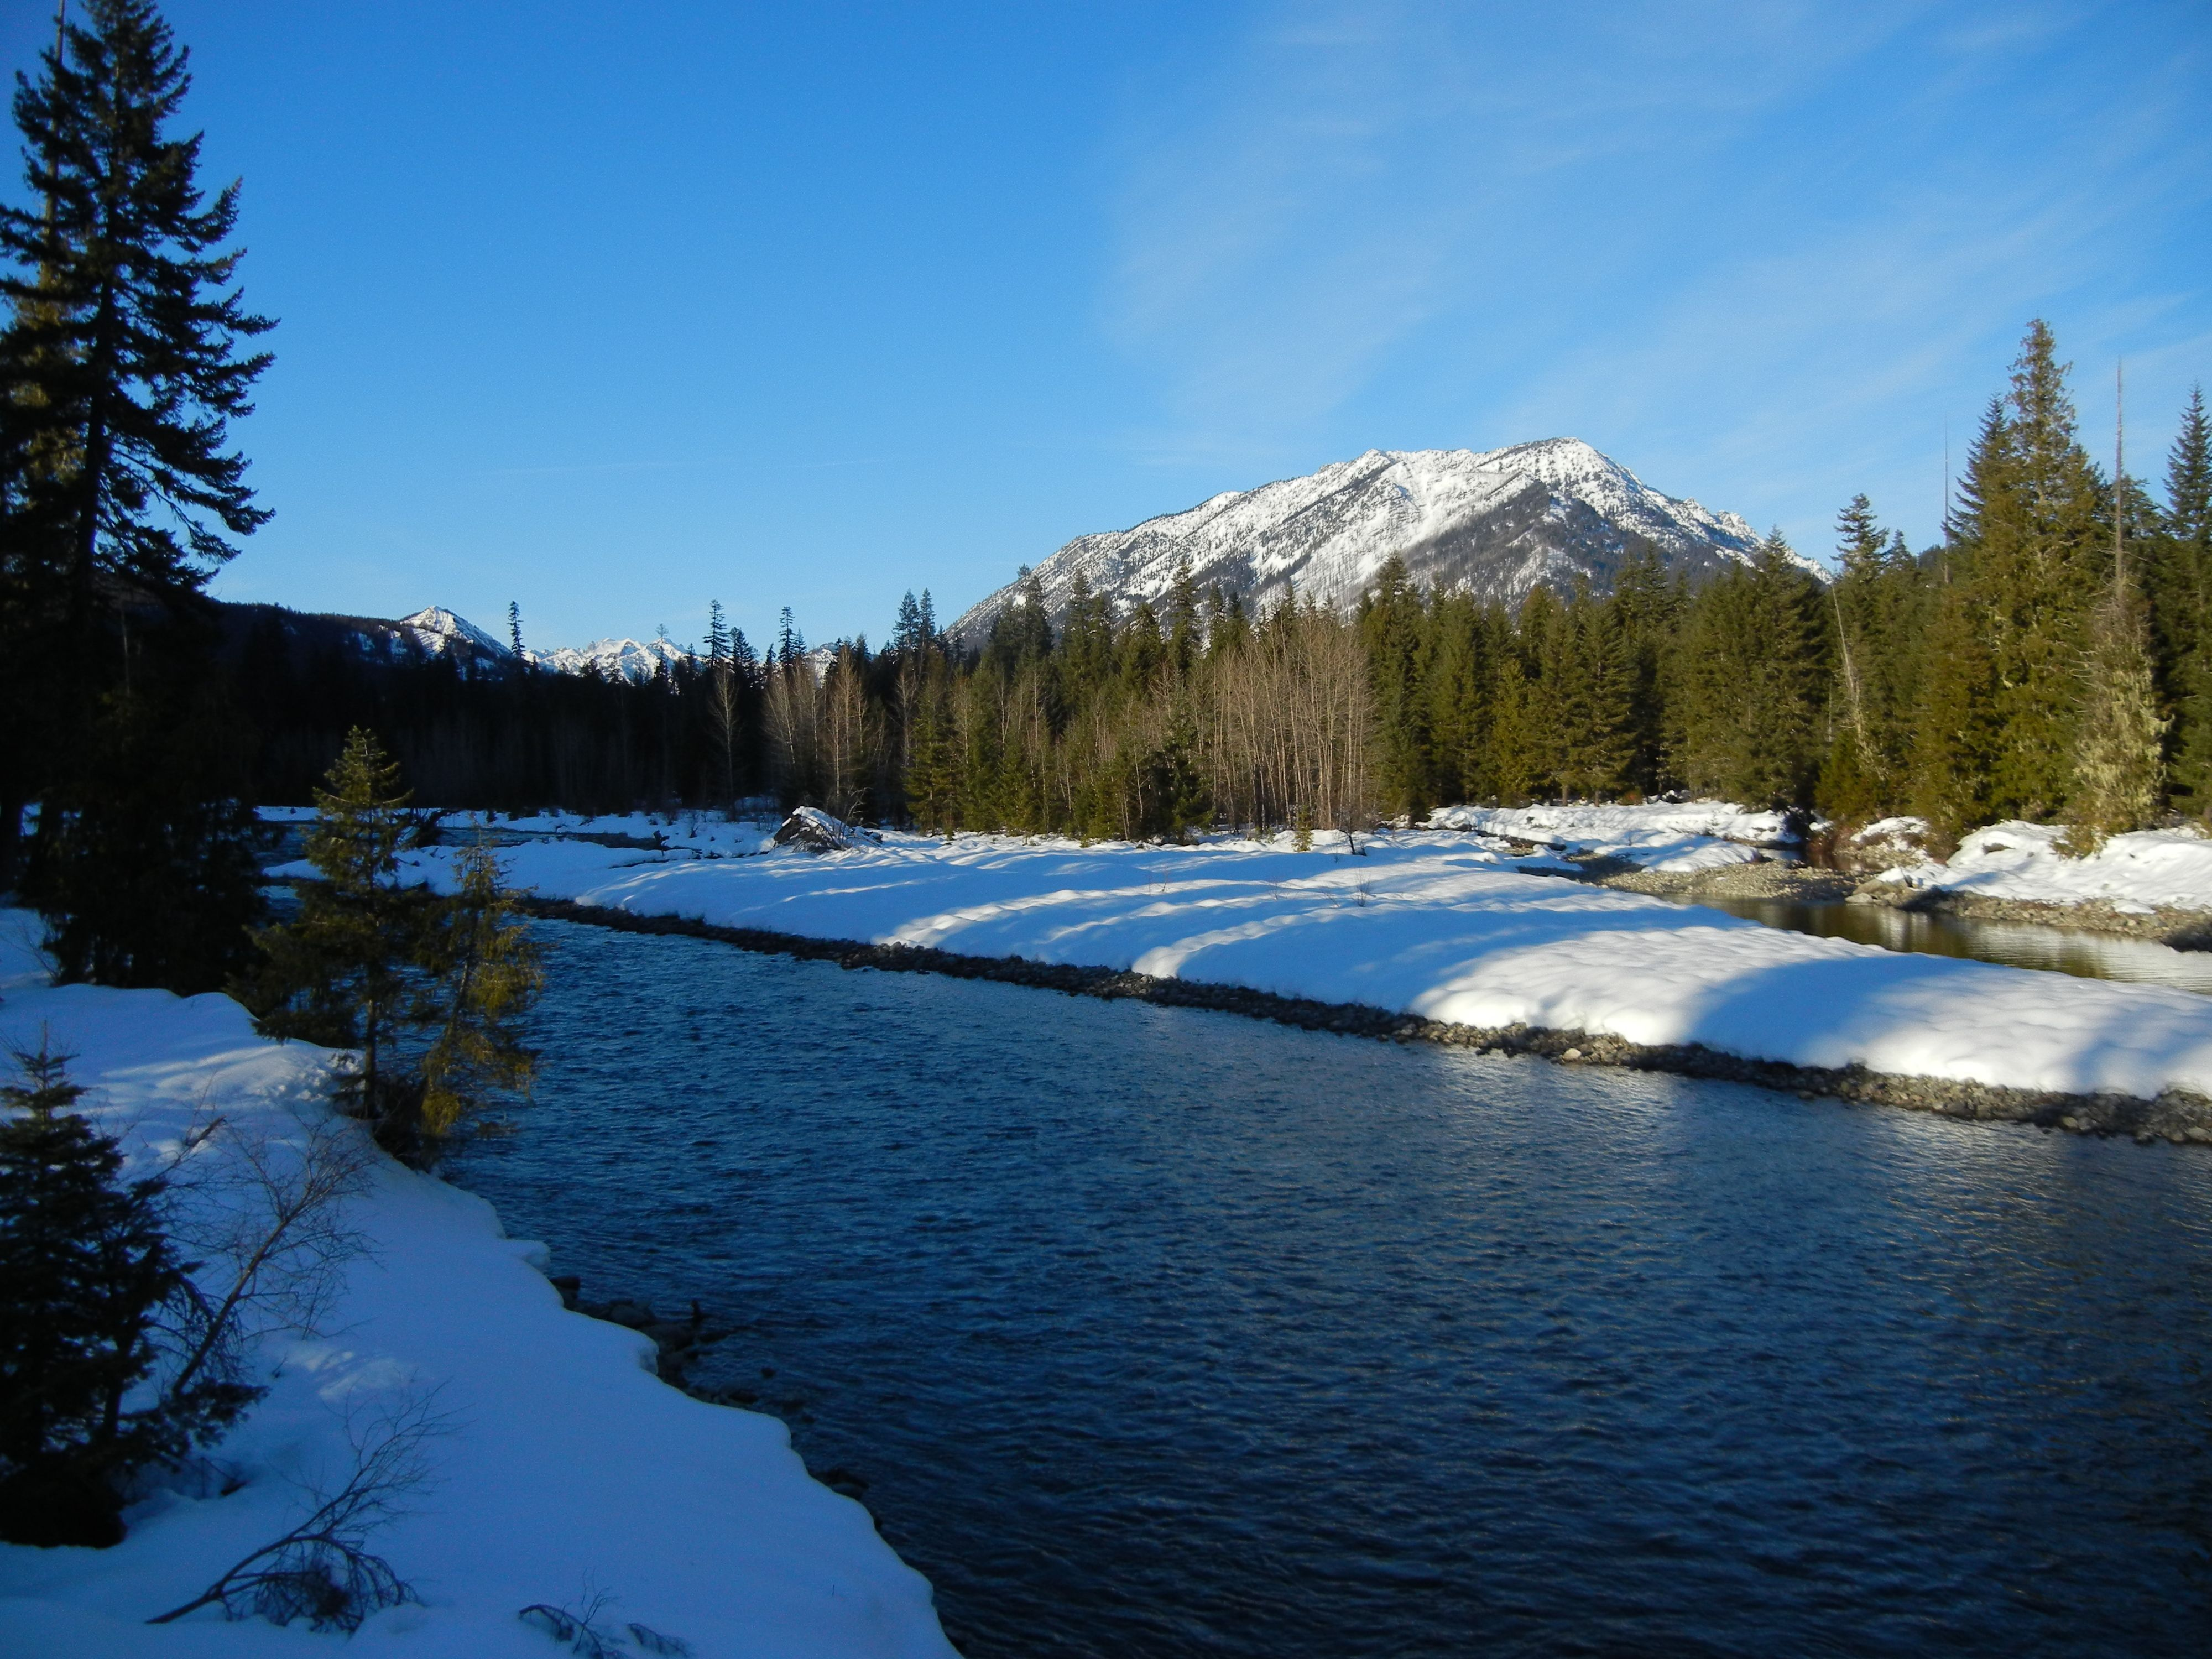 Cooper River Near Cle Elum Wa Photo By Phil West